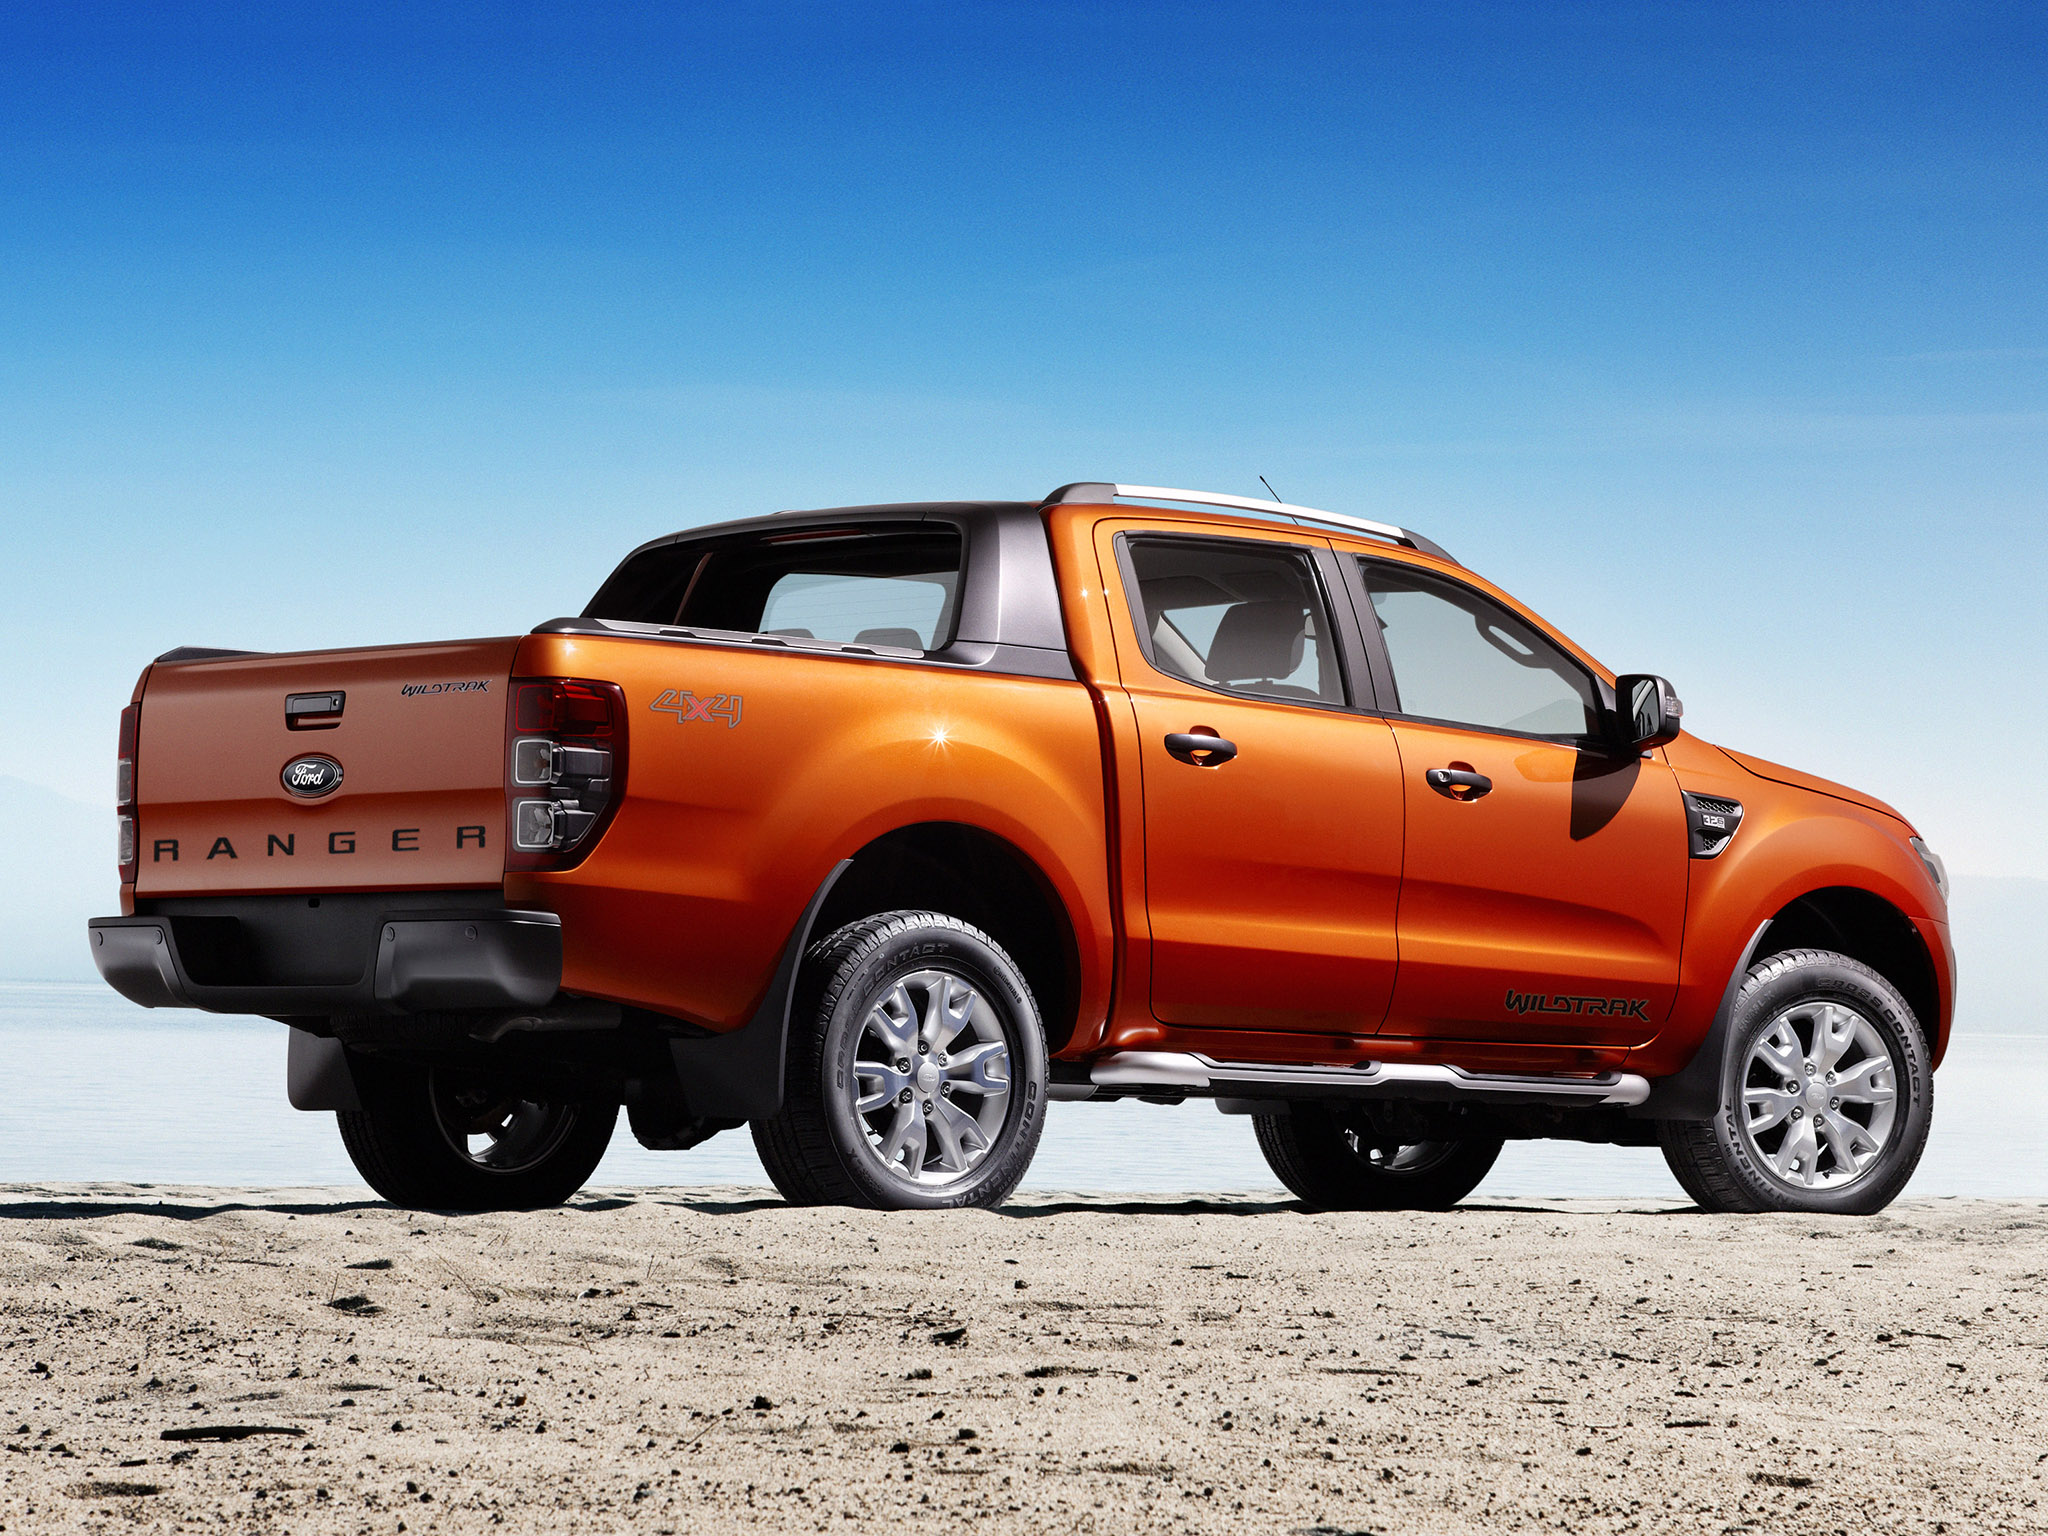 2012 Ford Ranger Wildtrak truck 4x4 wallpaper background 2048x1536